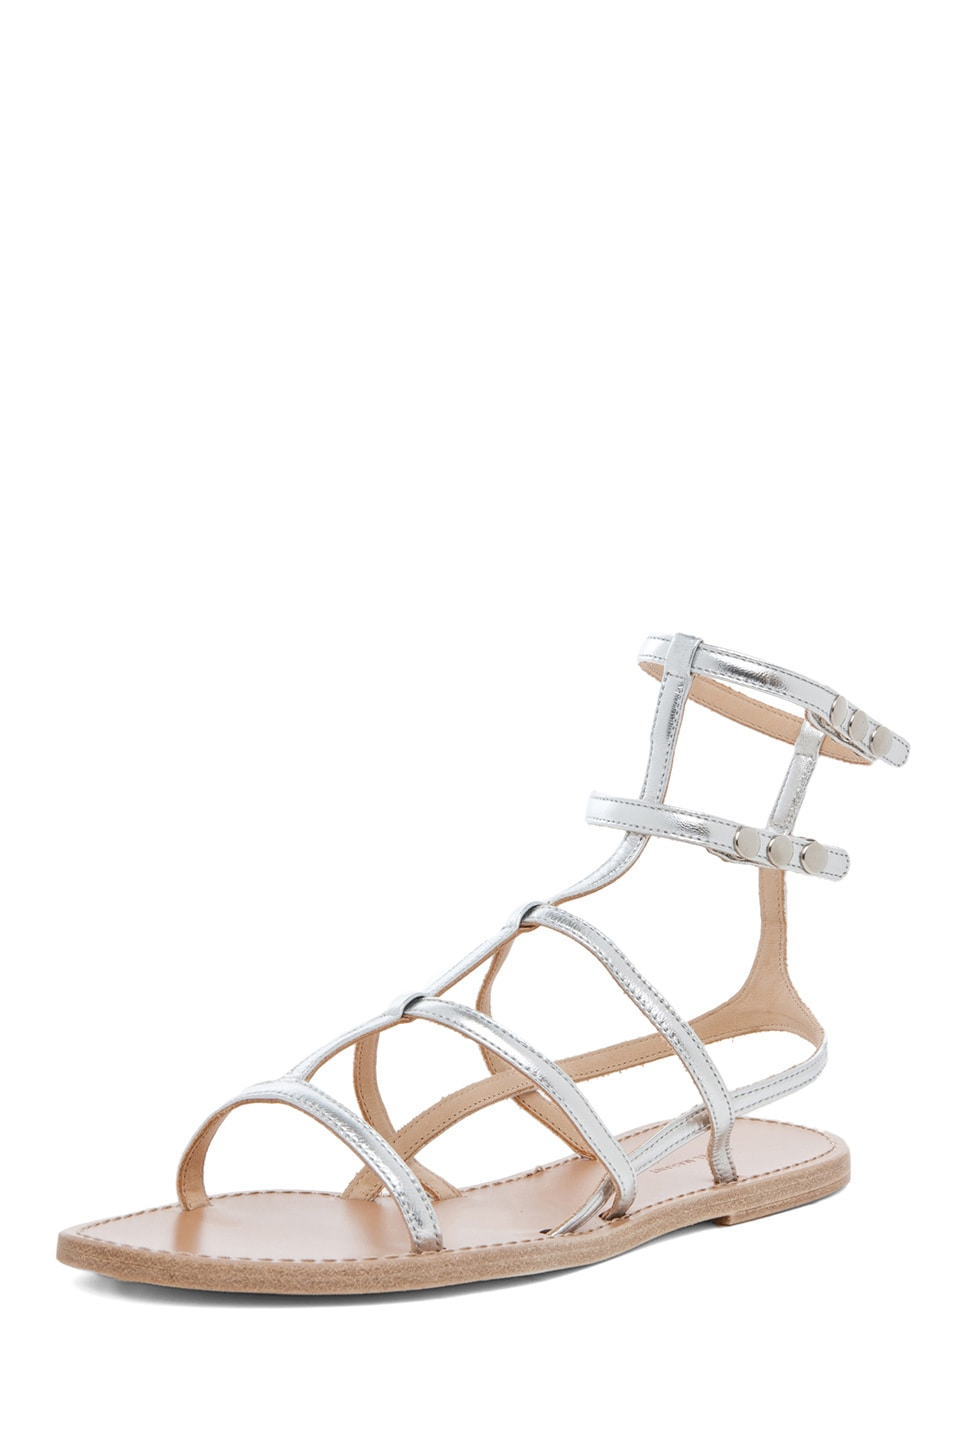 Image 2 of Isabel Marant Orion Sandals in Silver